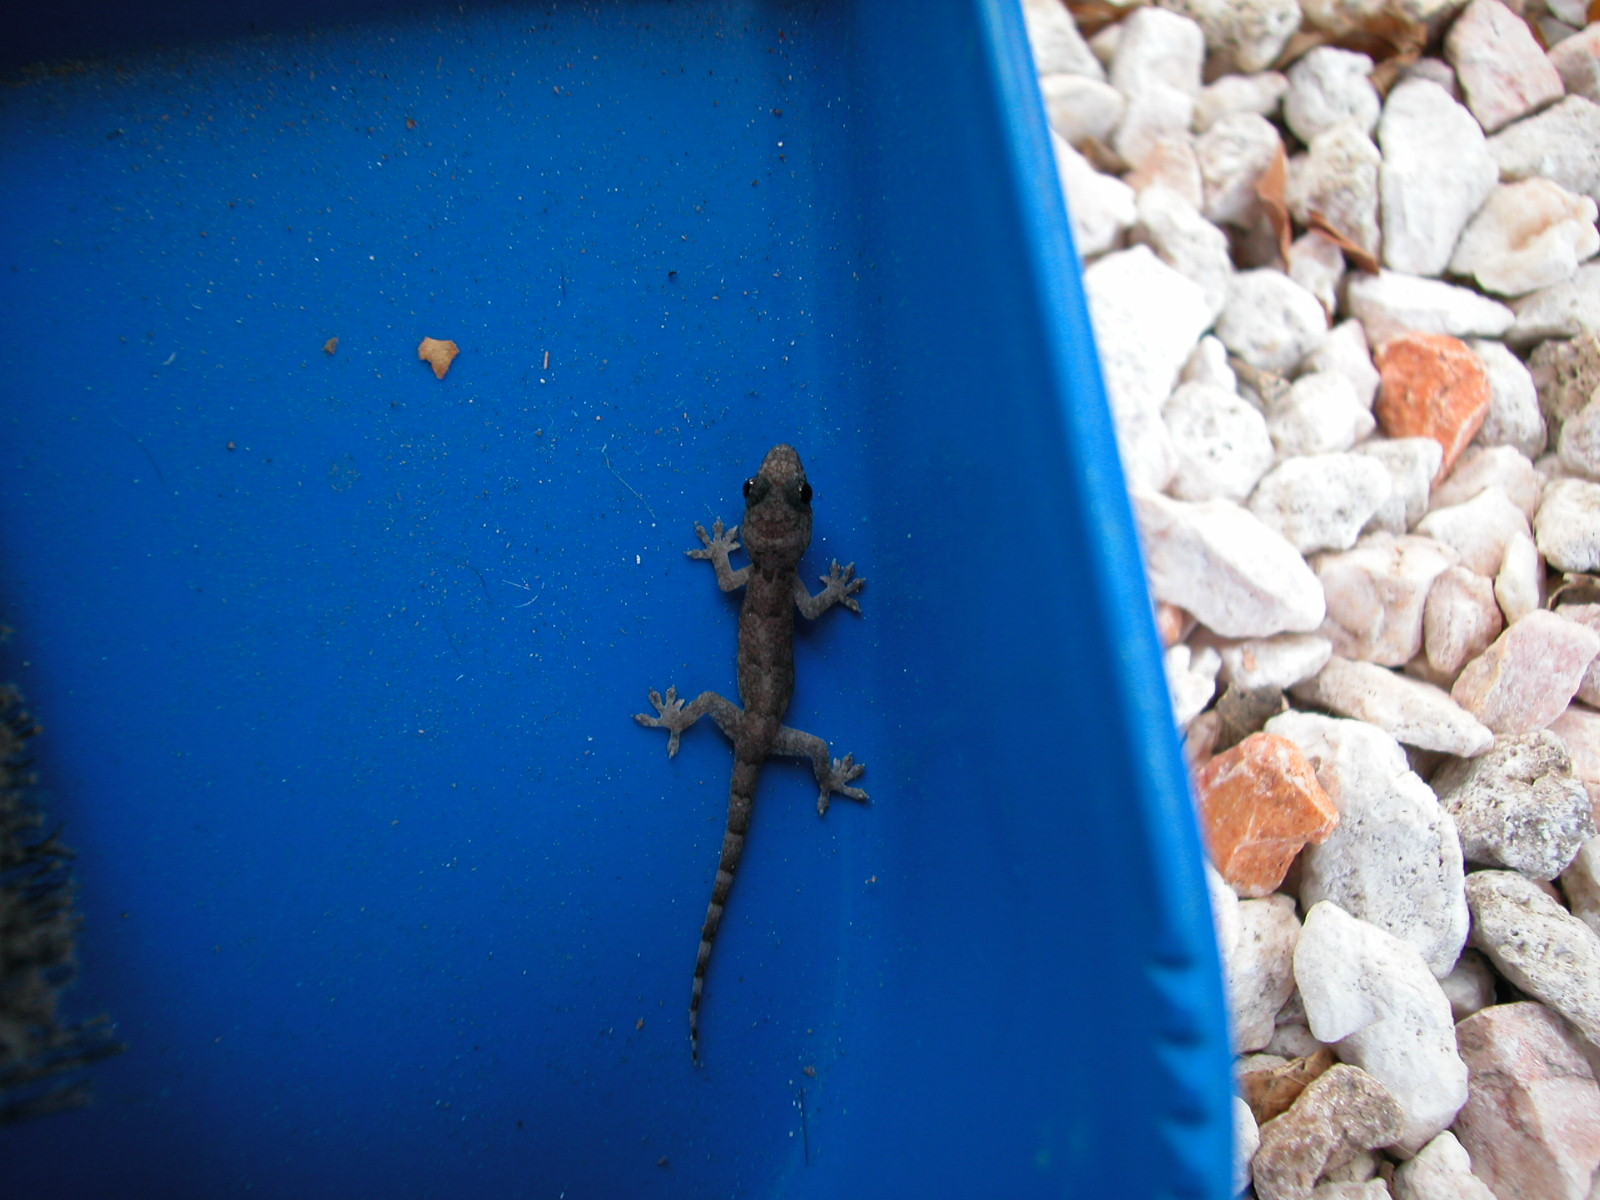 jacco curacao nature animals land gecko lizzard blue plastic top little small baby feet textures